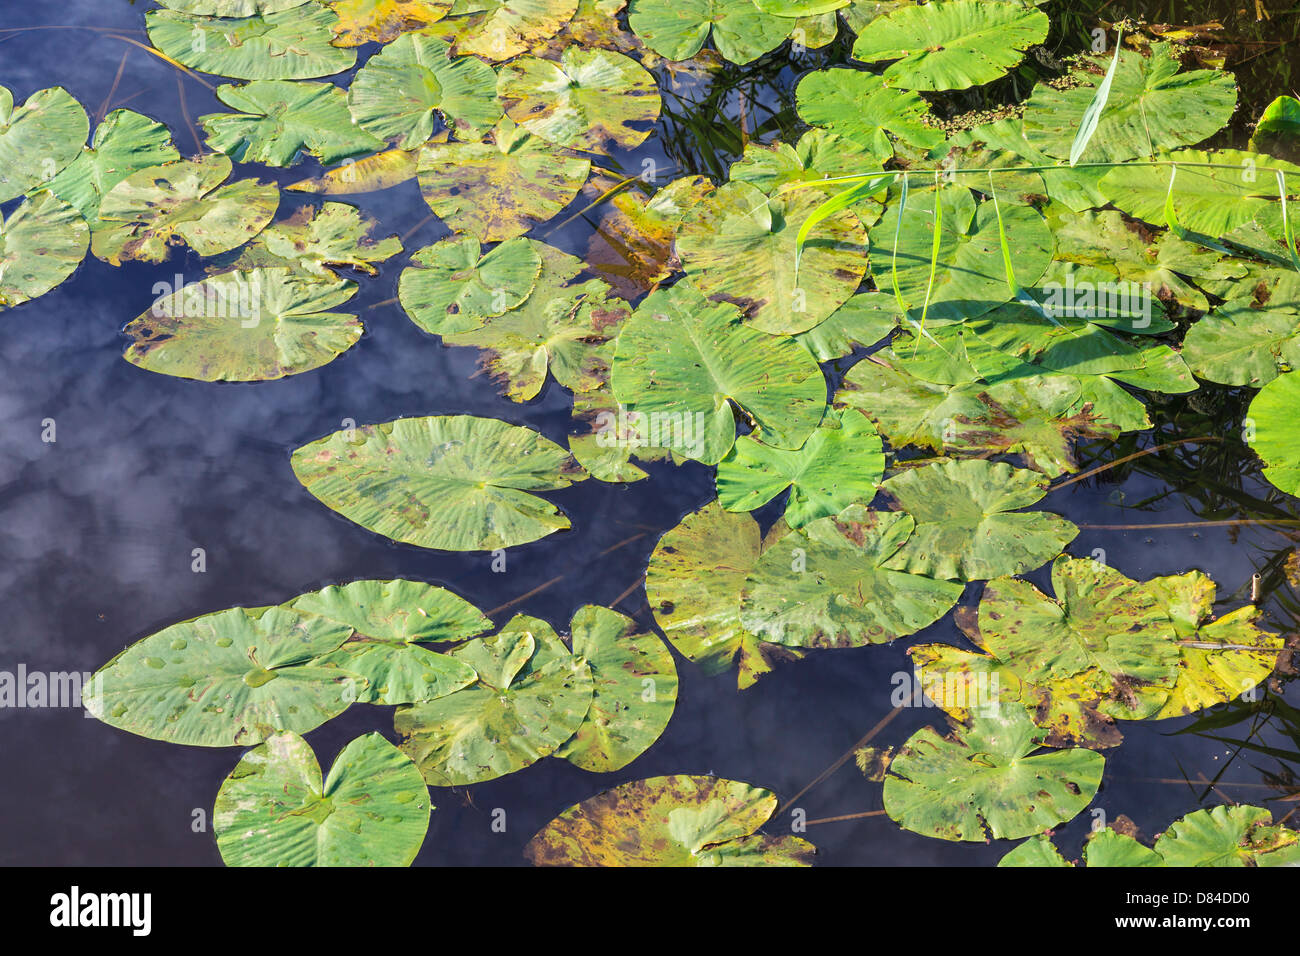 Waterlily leaves floating in the water with reflections - Stock Image